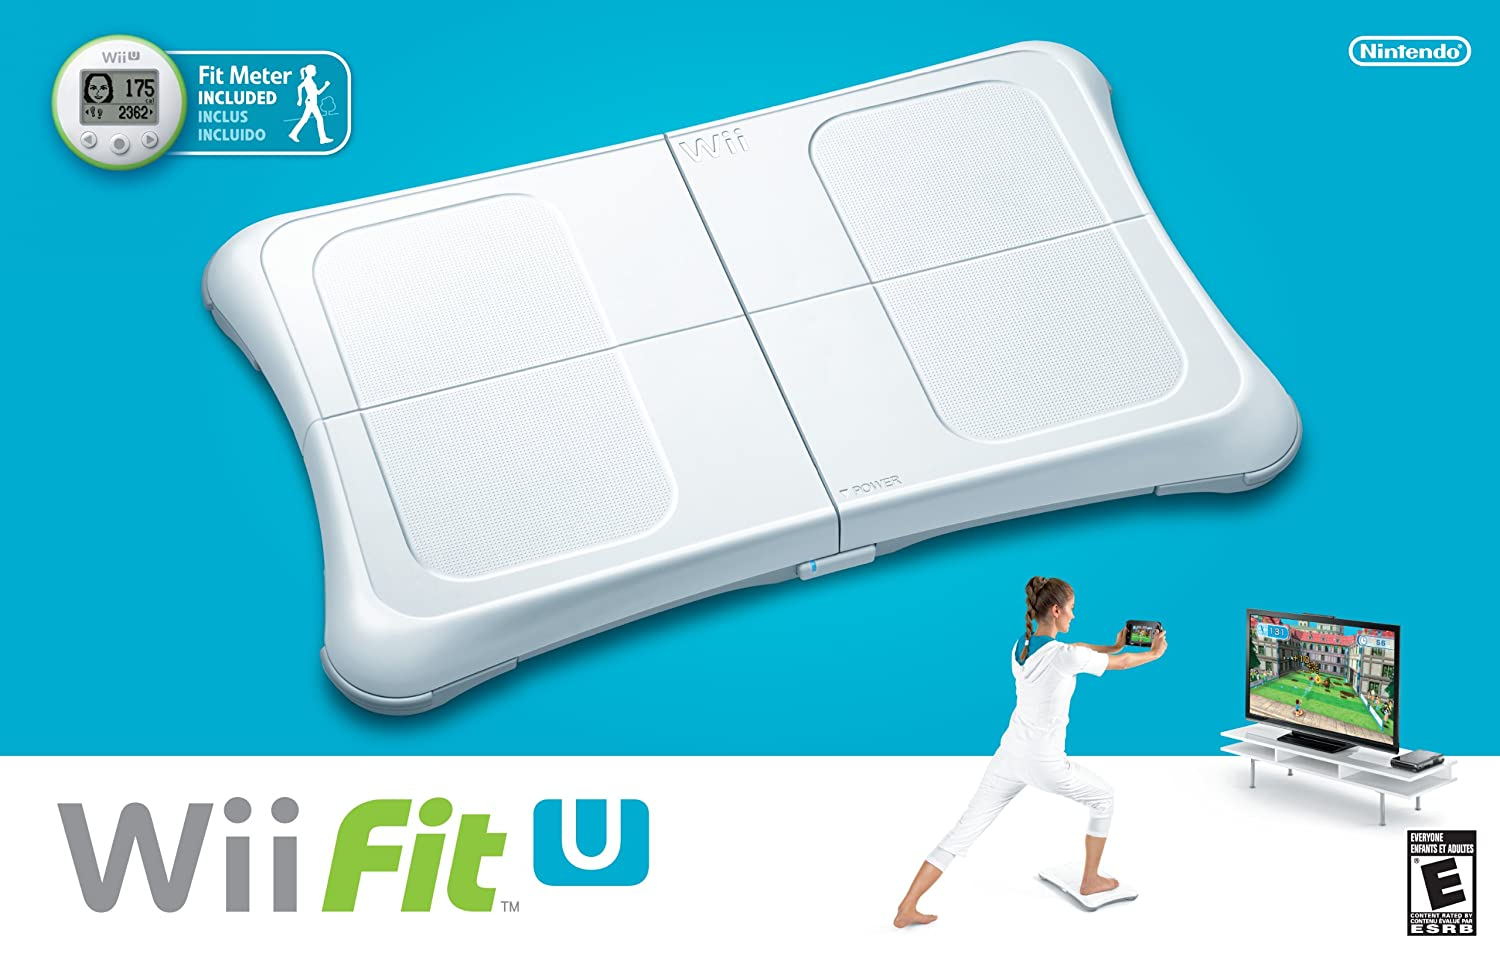 Amazon.com: Wii Fit U w/Wii Balance Board accessory and Fit Meter ...